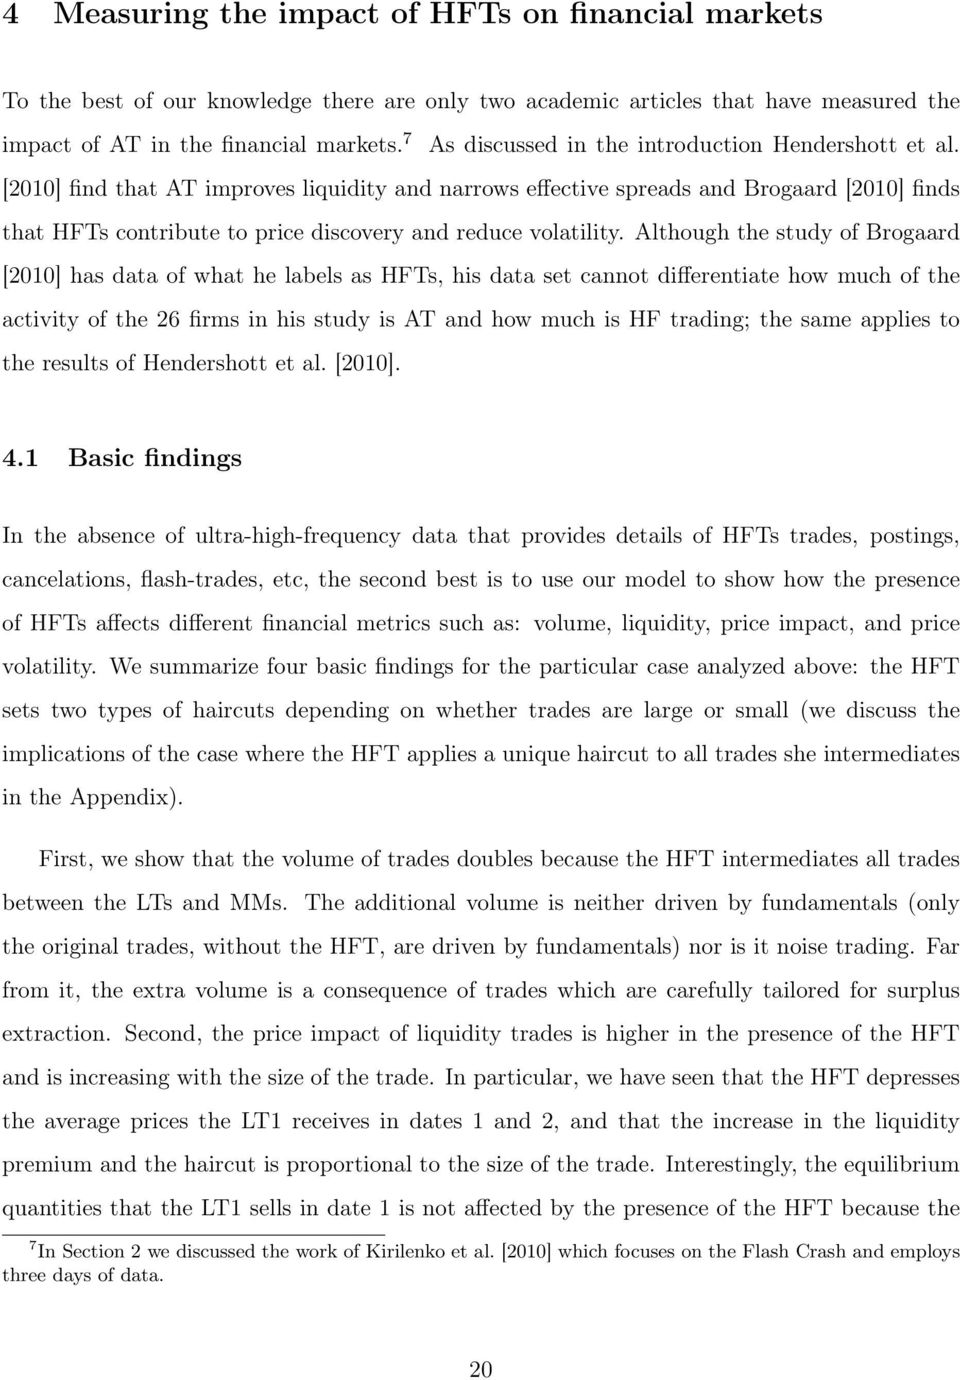 [00] find that AT improves liquidity and narrows effective spreads and Brogaard [00] finds that HFTs contribute to price discovery and reduce volatility.